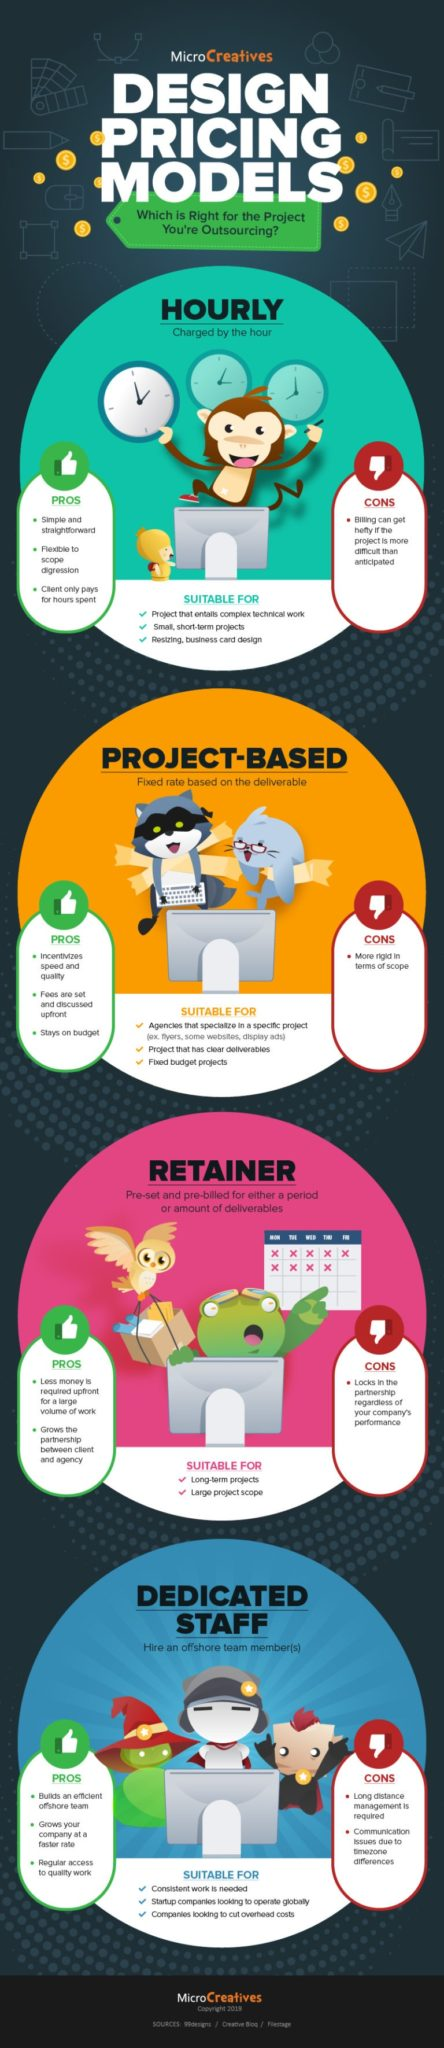 Infographic Outsourcing Design